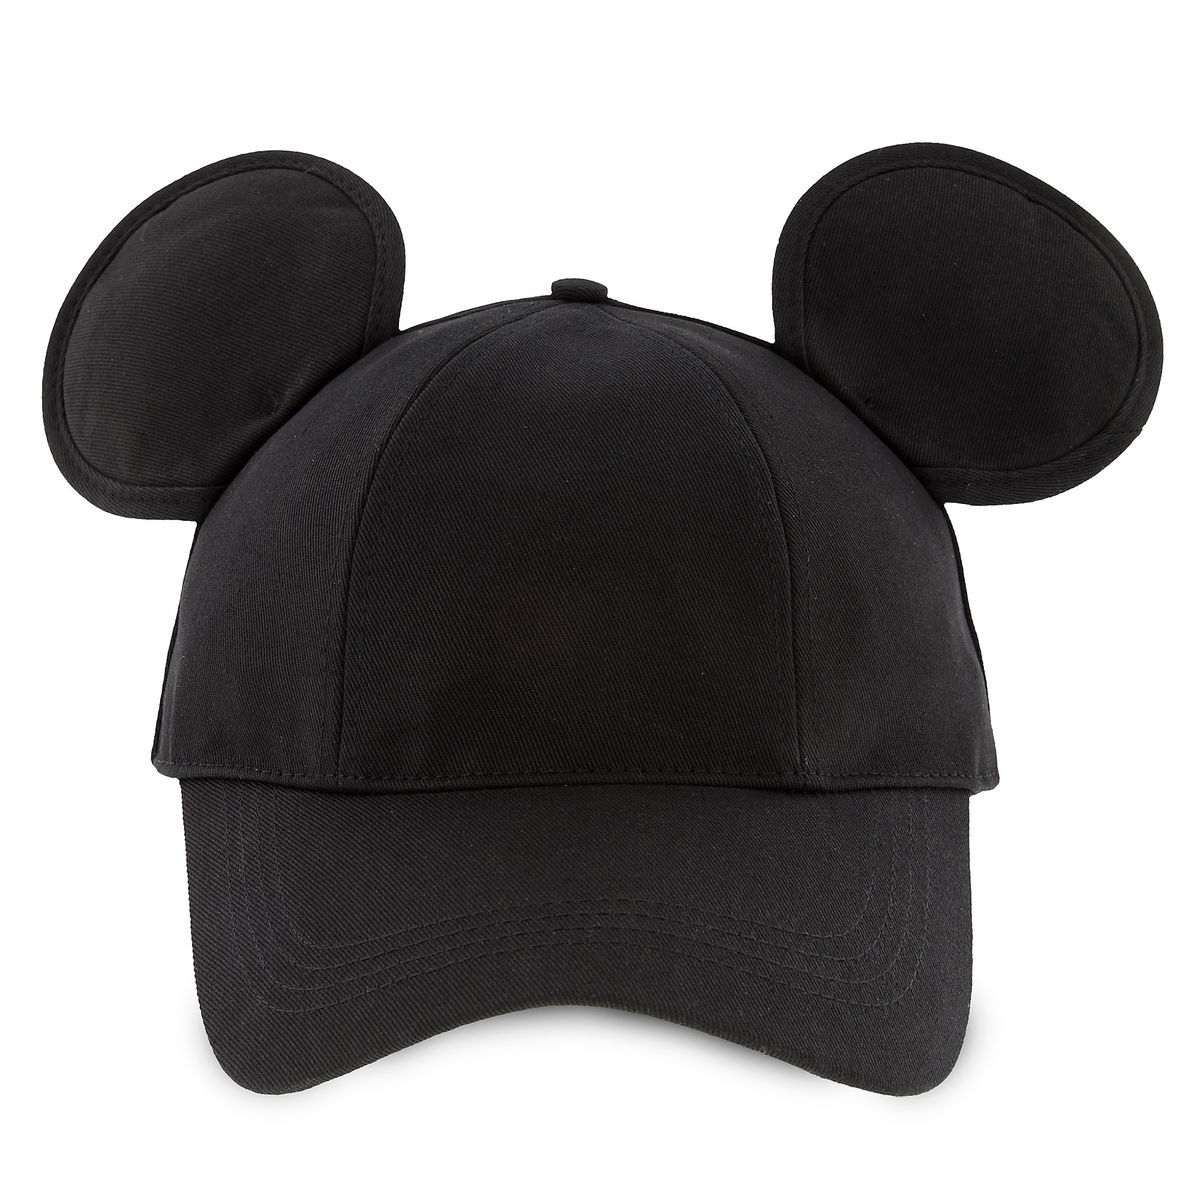 Product Image of Mickey Mouse Ears Baseball Cap for Adults   1 e9ad209022